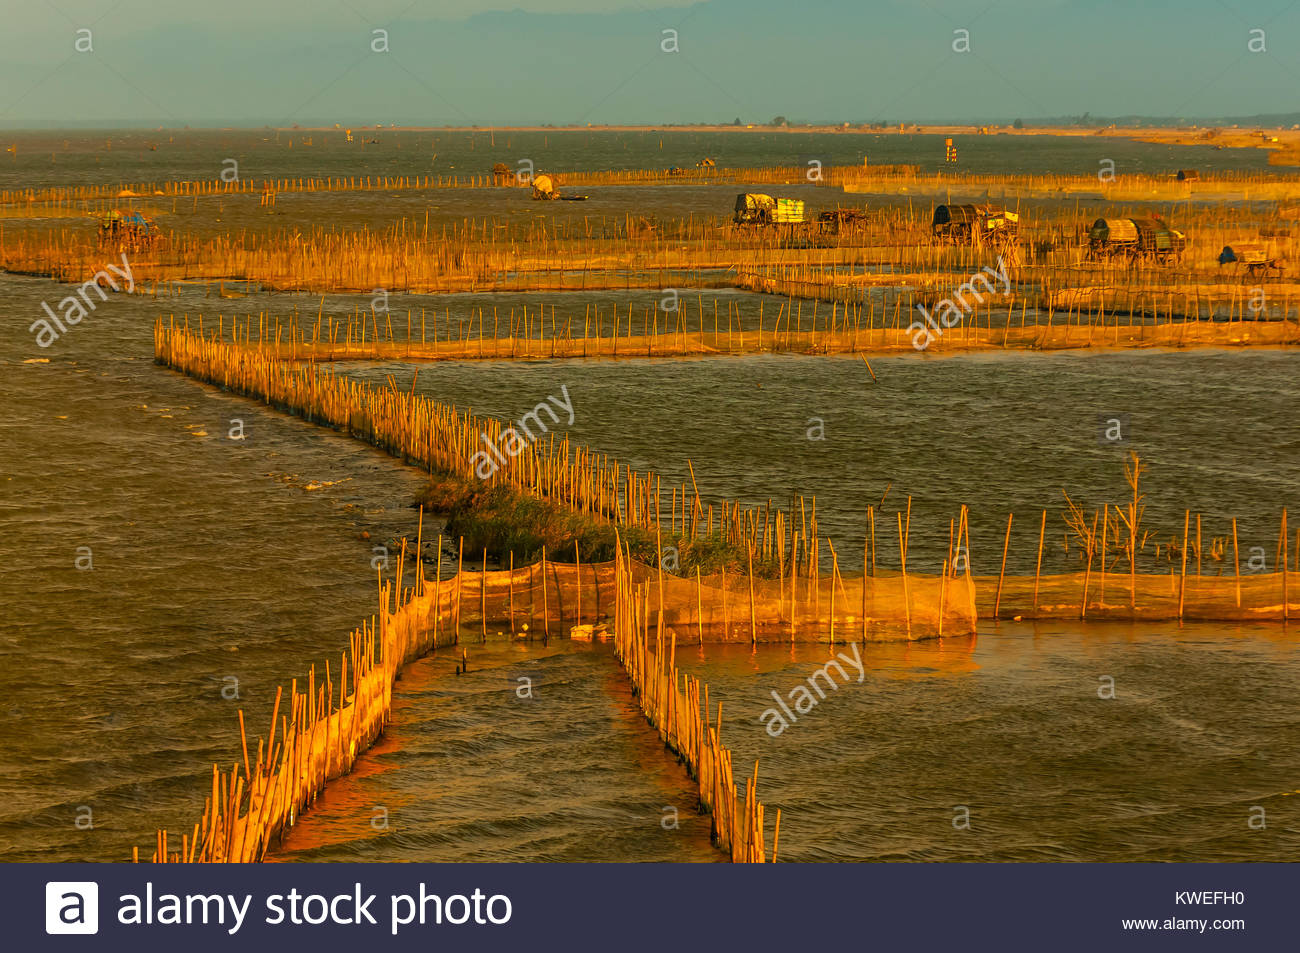 Fish farms, in countryside outside Hue, Central Vietnam. - Stock Image